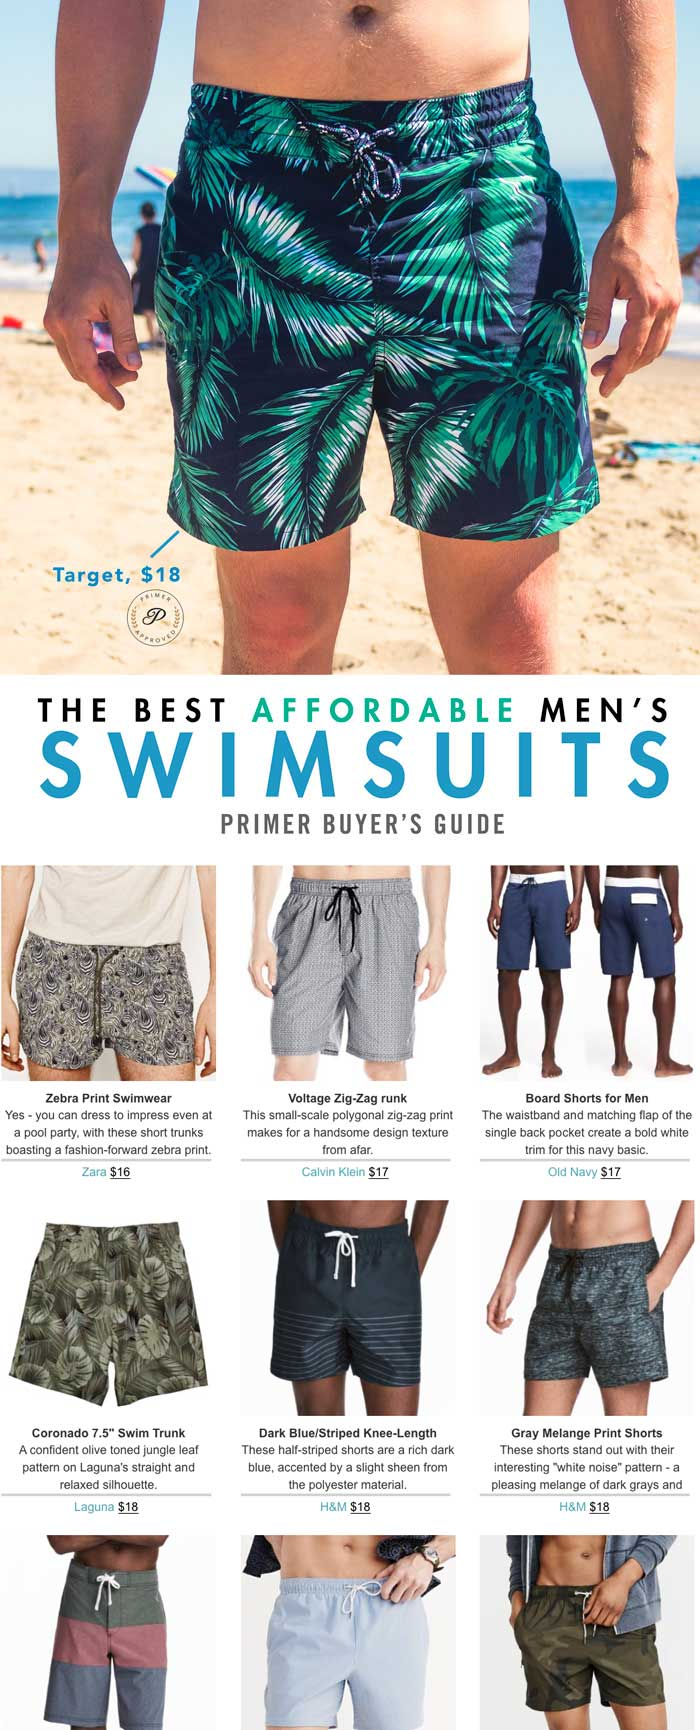 8accdcefc0 affordable men swimwear. best mens swimsuit - affordable swim trunks